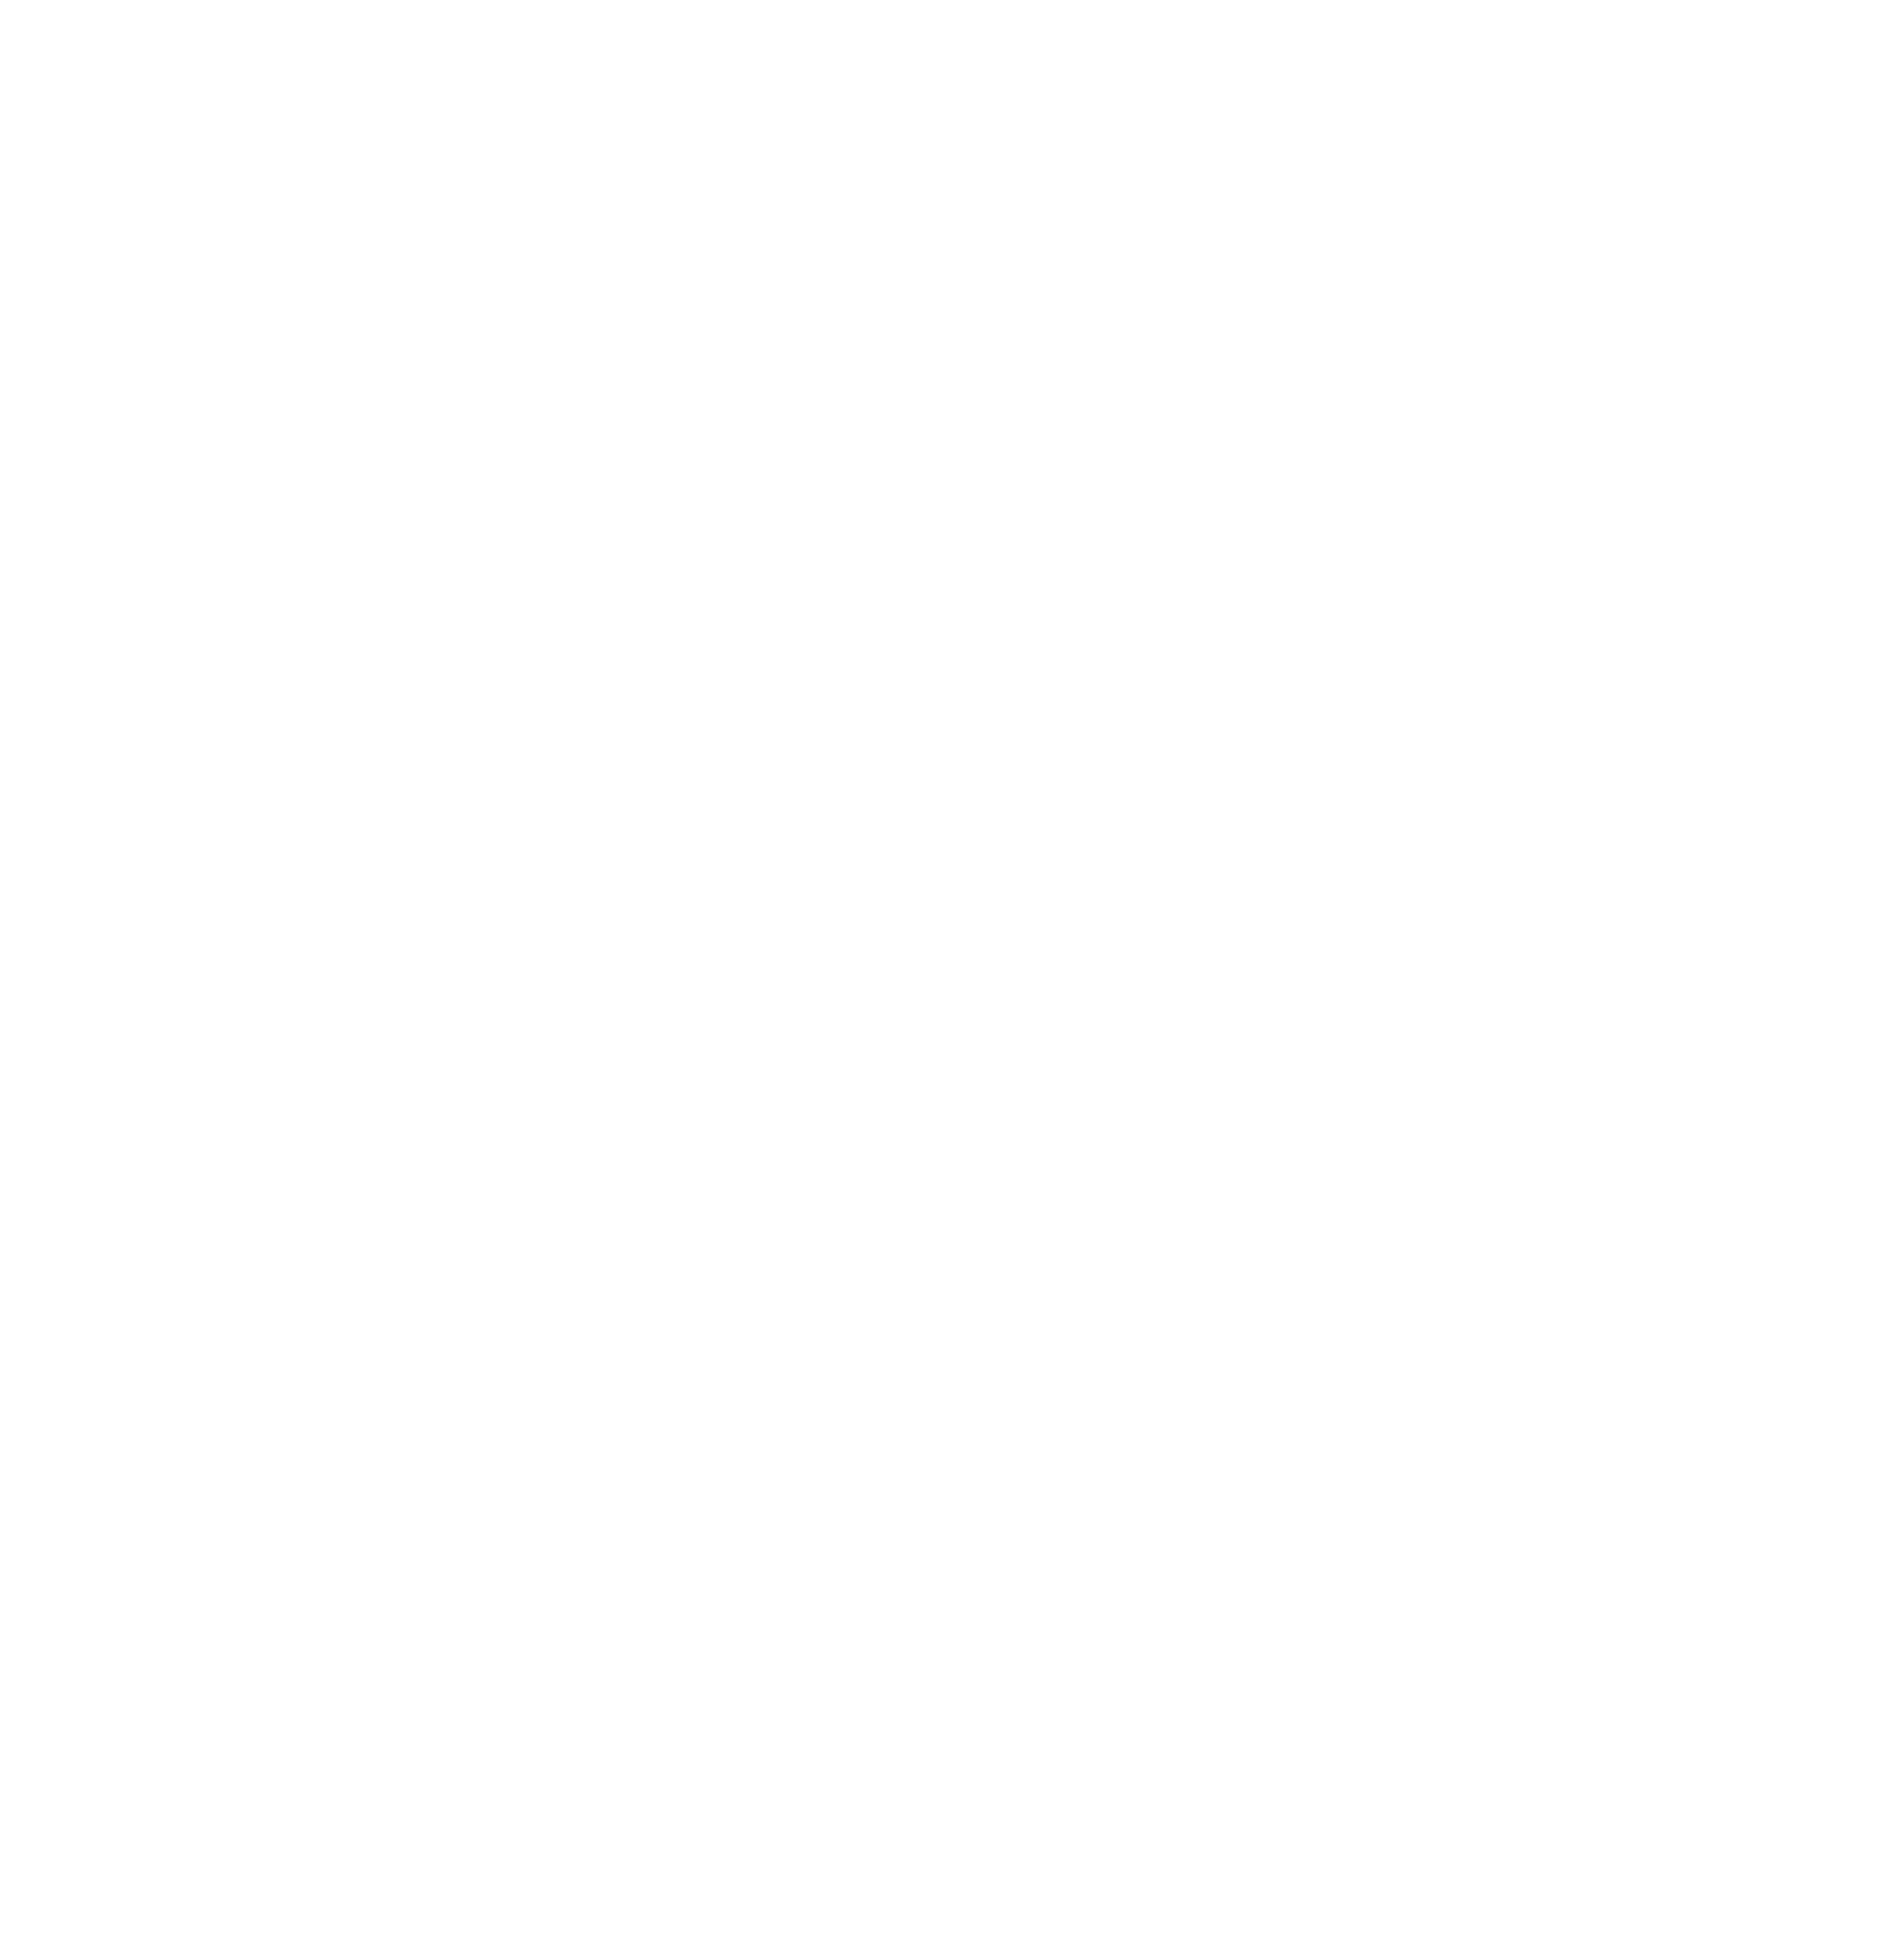 3 FIT THEORY - Unlock More Icon